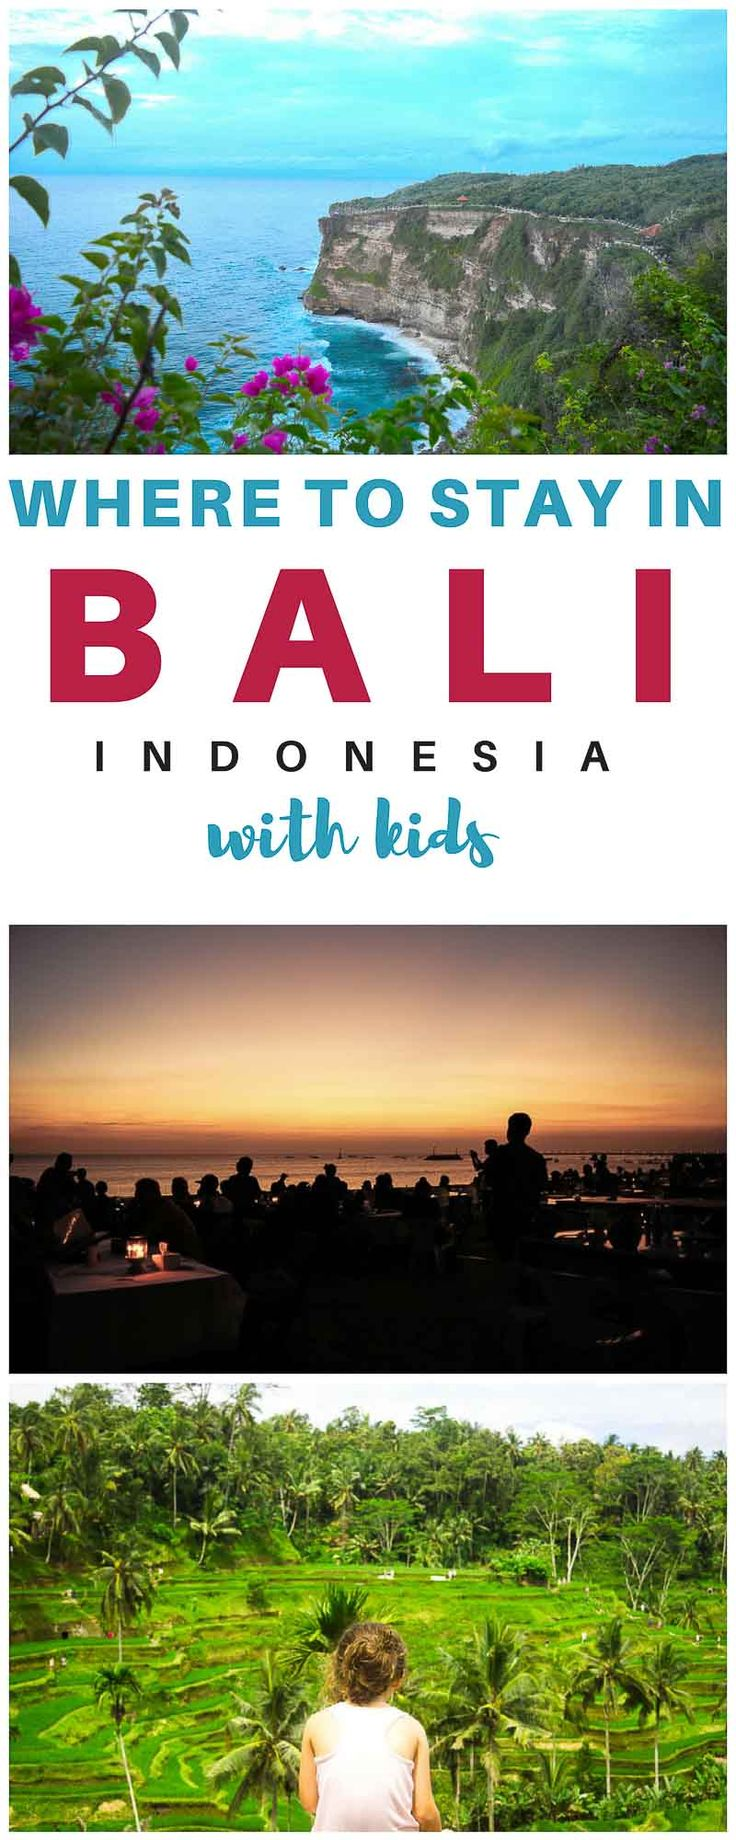 The best locations to base yourself in Bali - Bali with kids | Bali Holidays | Bali Travel | Bali Tips | Bali Beaches